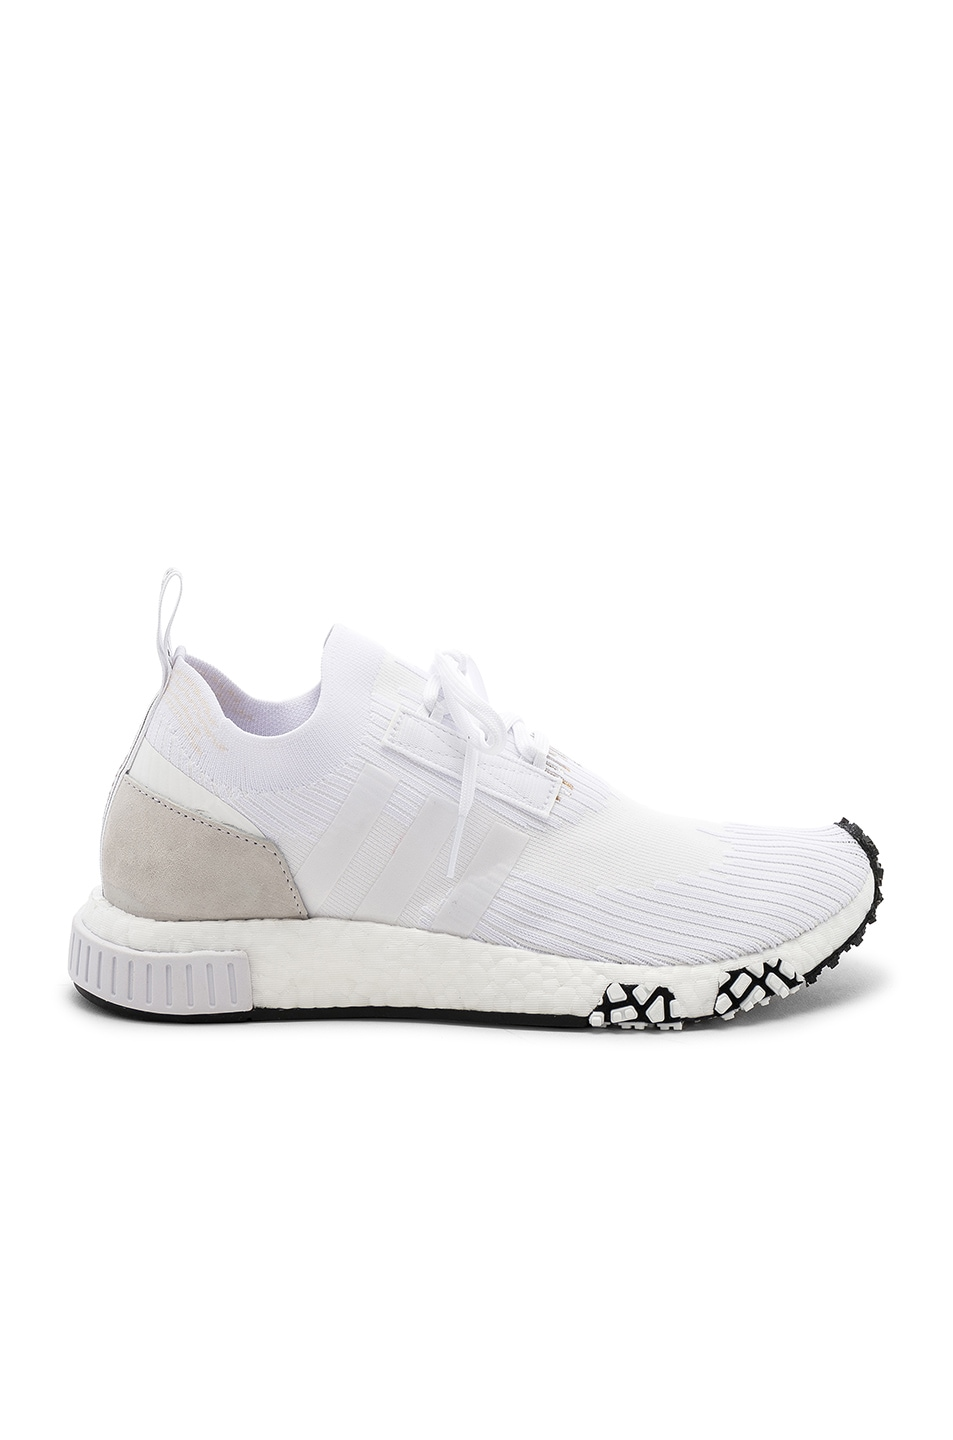 8686132f561a2 Image 1 of adidas Originals NMD Racer PK in White   White   White